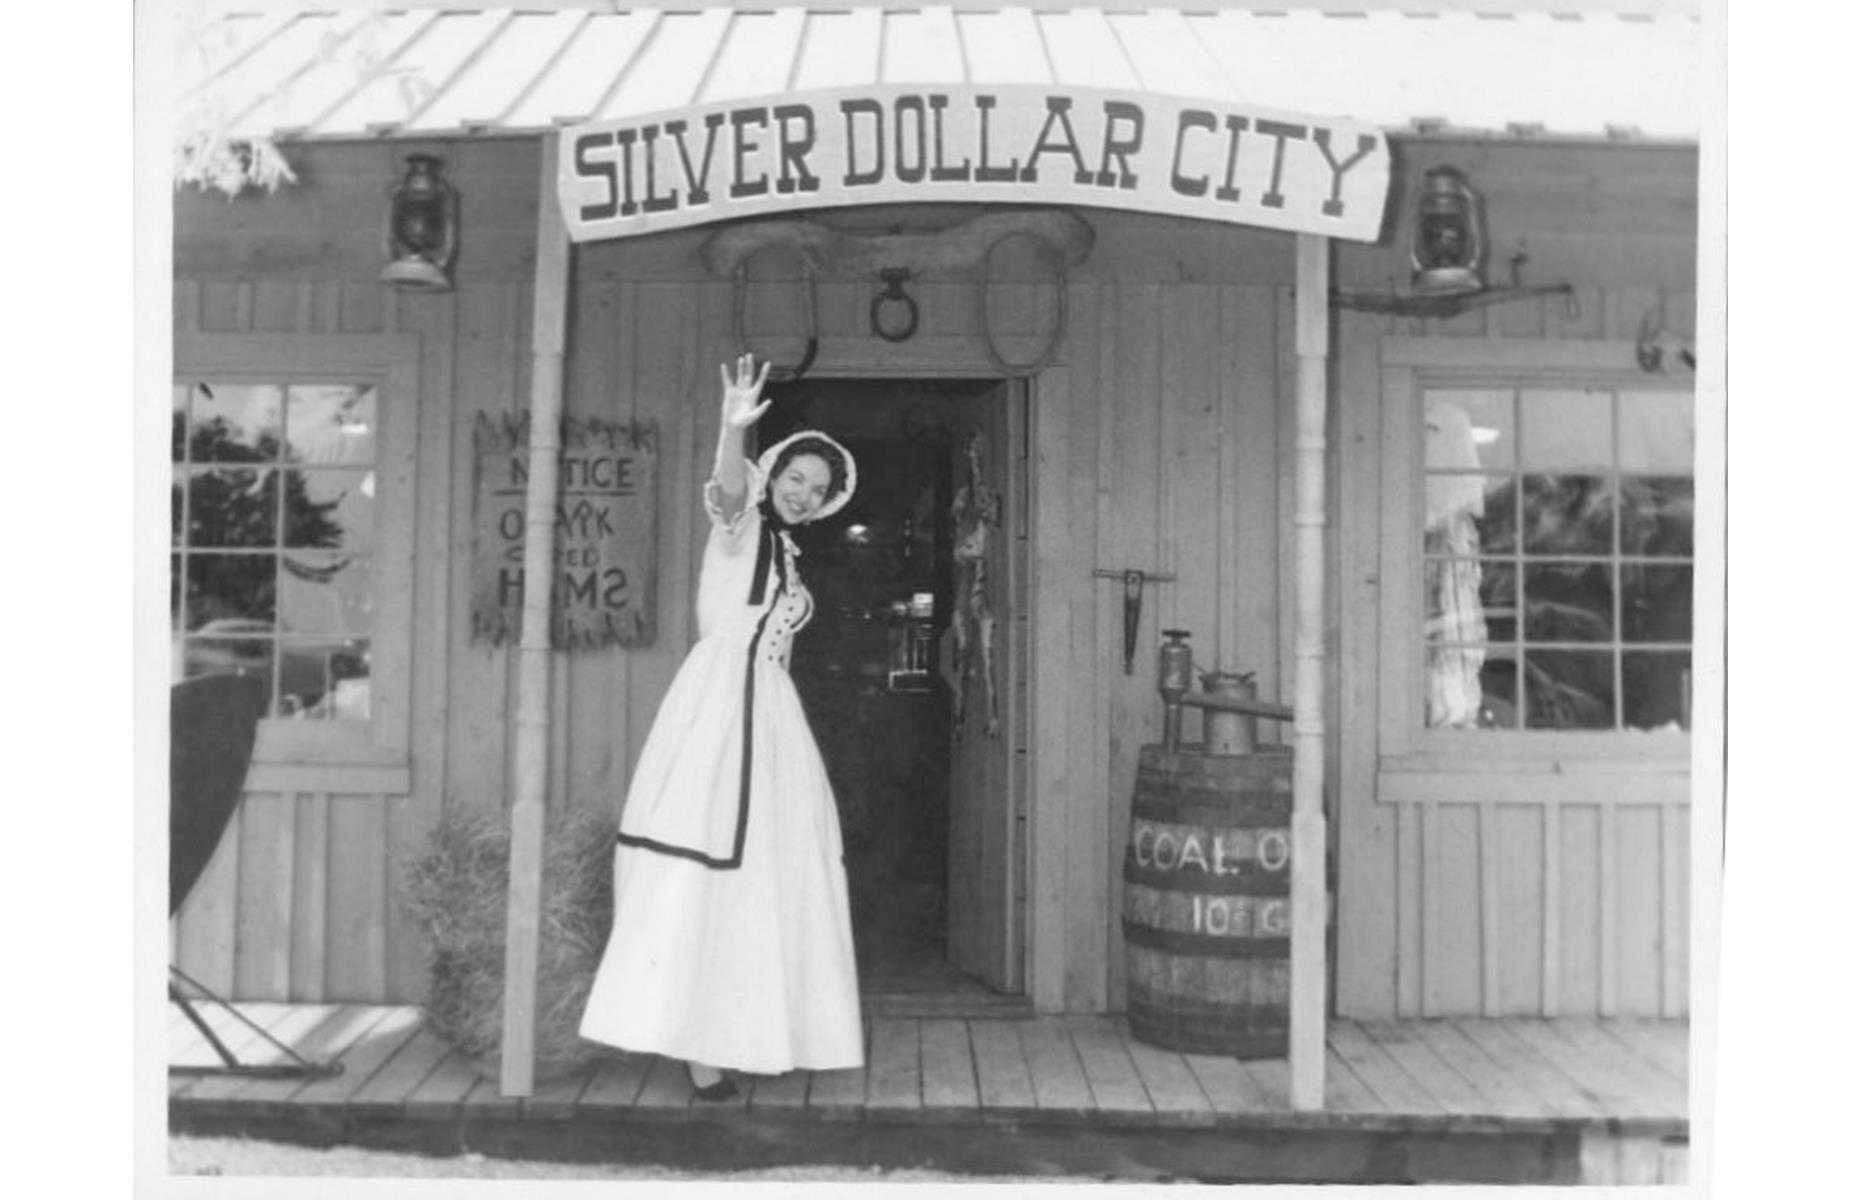 Slide 16 of 35: Thoroughly committed to its 1880s theme, Silver Dollar City had its start in the 1950s when the Herschend family set to work creating a replica mining town. In 1960, they opened the attraction, named Silver Dollar City, to the public – it was complete with an ice-cream parlor, a blacksmith's shop and a general store. The latter is pictured here in the 1960s.